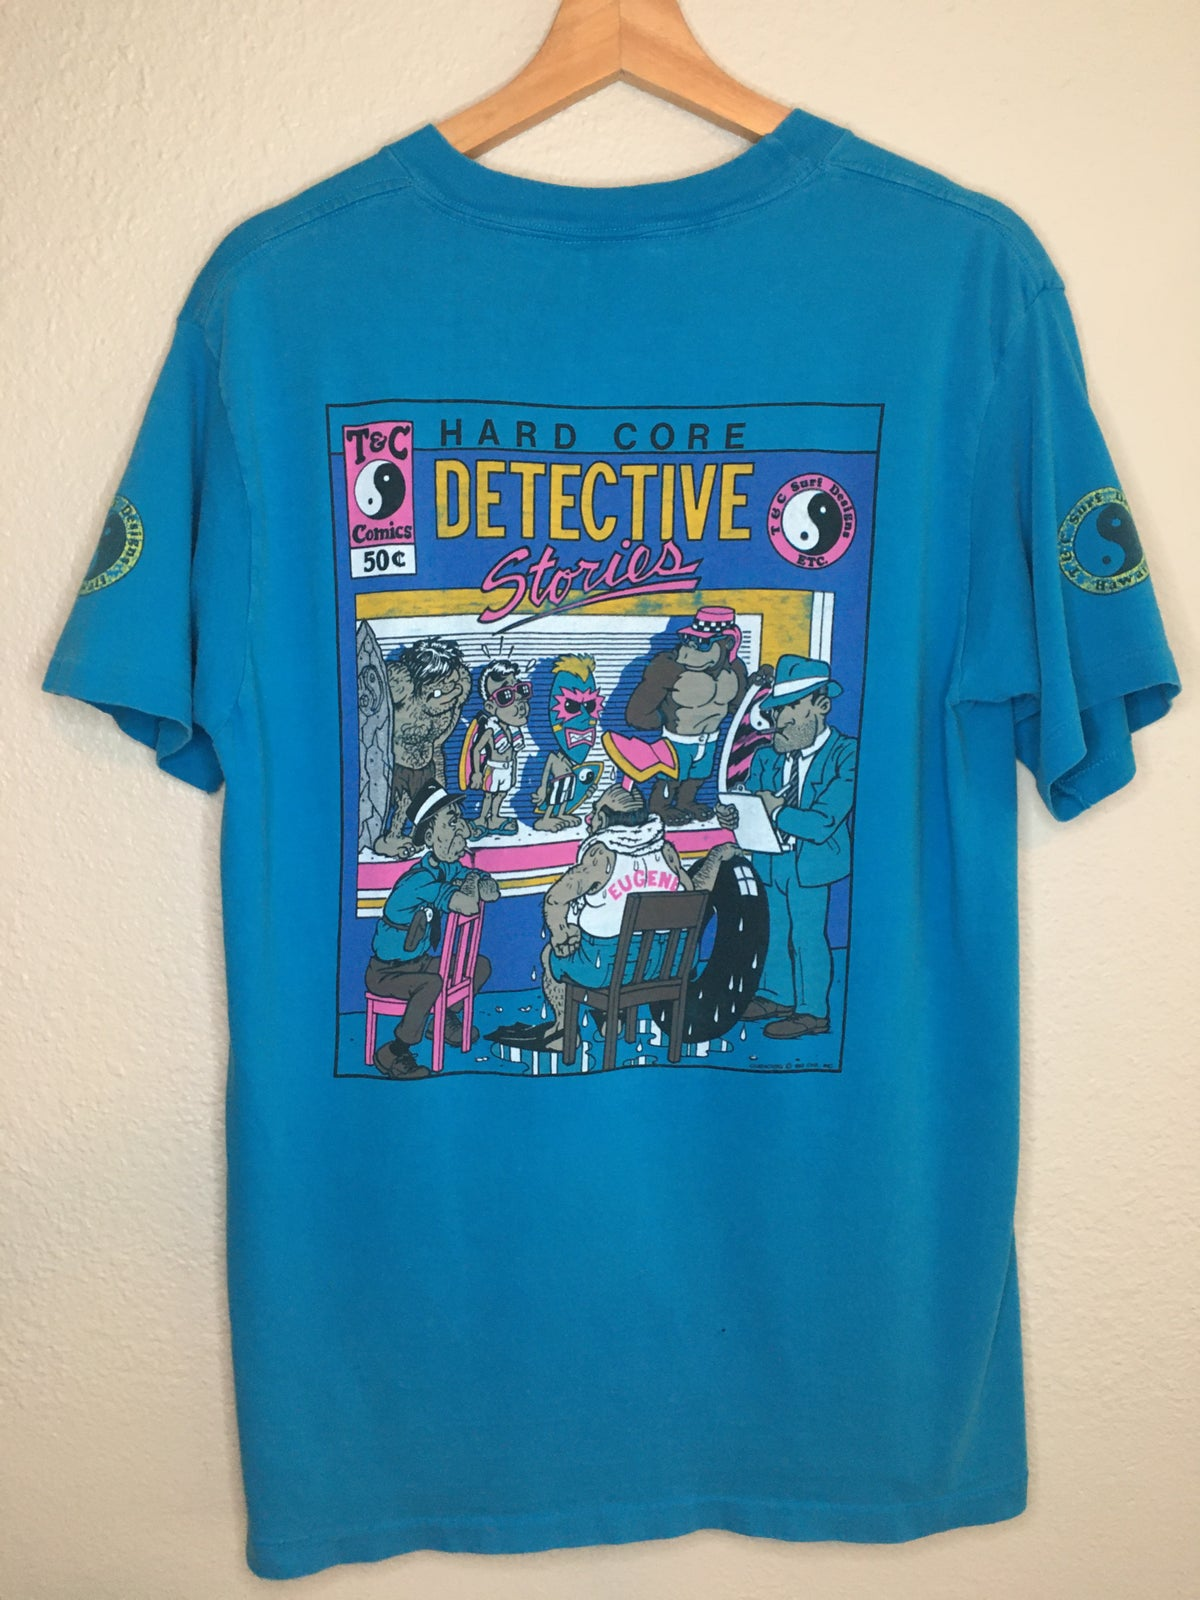 1987  Rare T&C Surf Detective Stories Tee